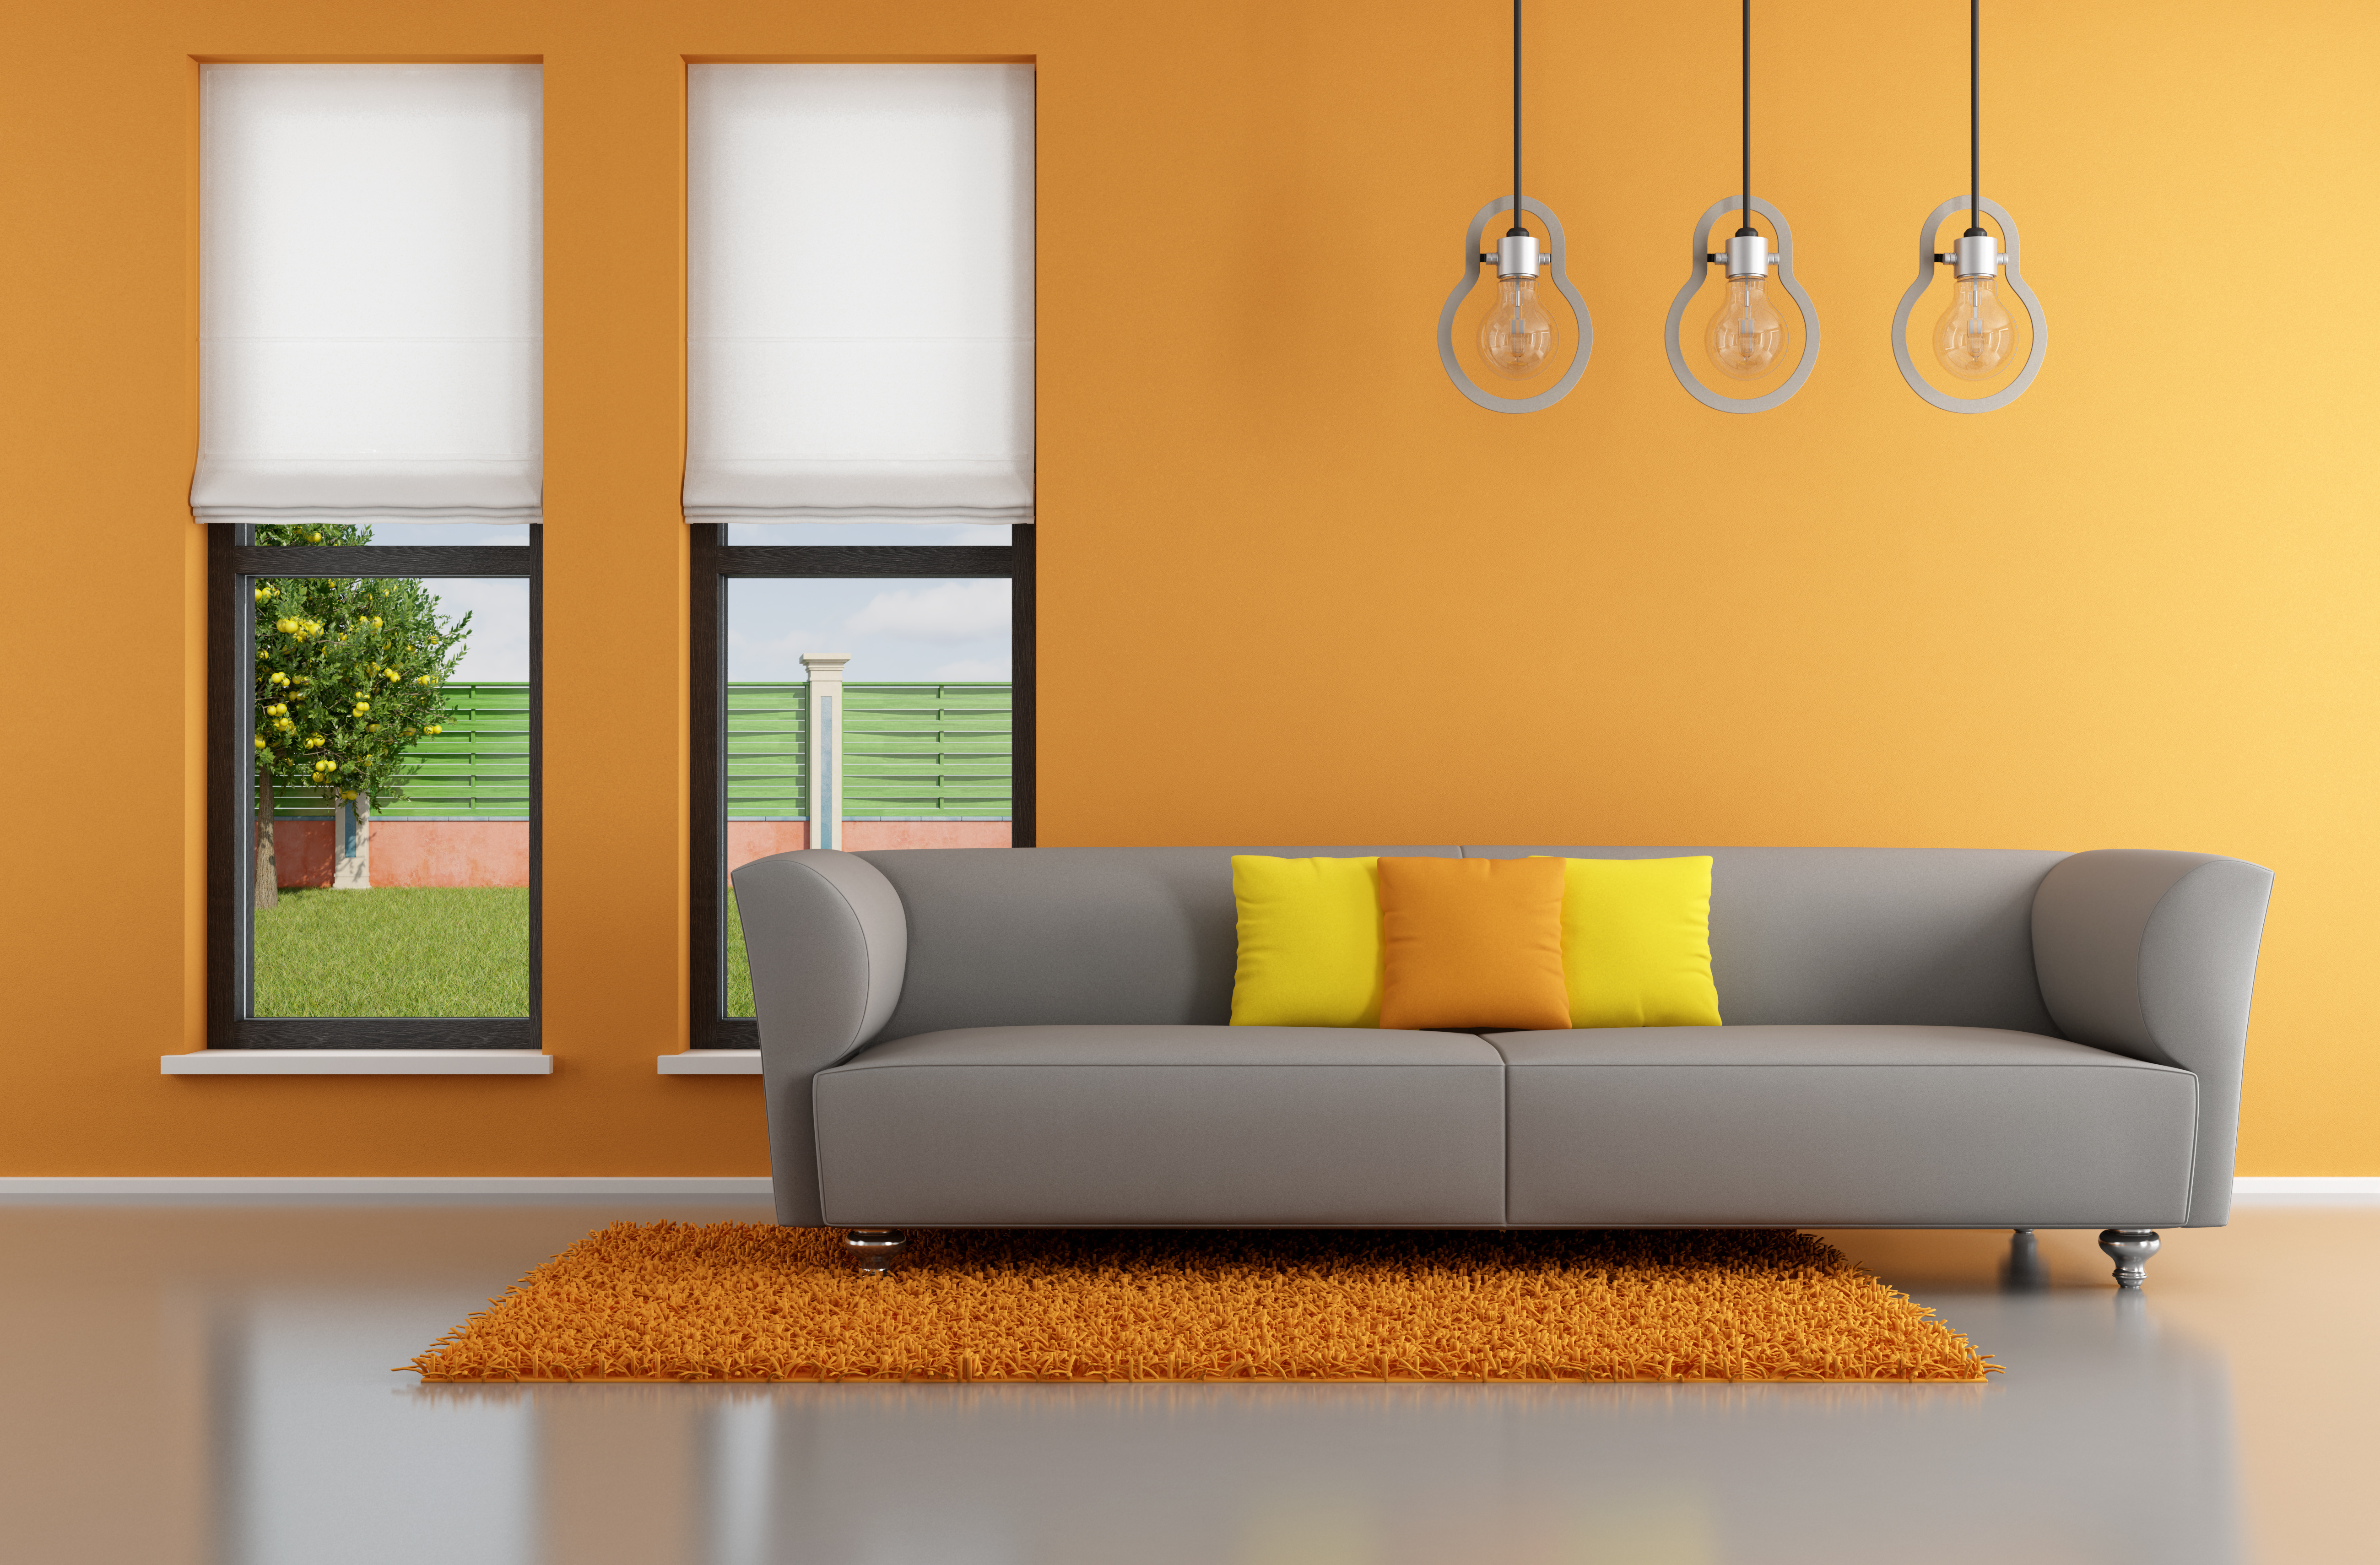 triple ceiling light with mini pendant and gray sofa also sofa pillows plus yellow rugs